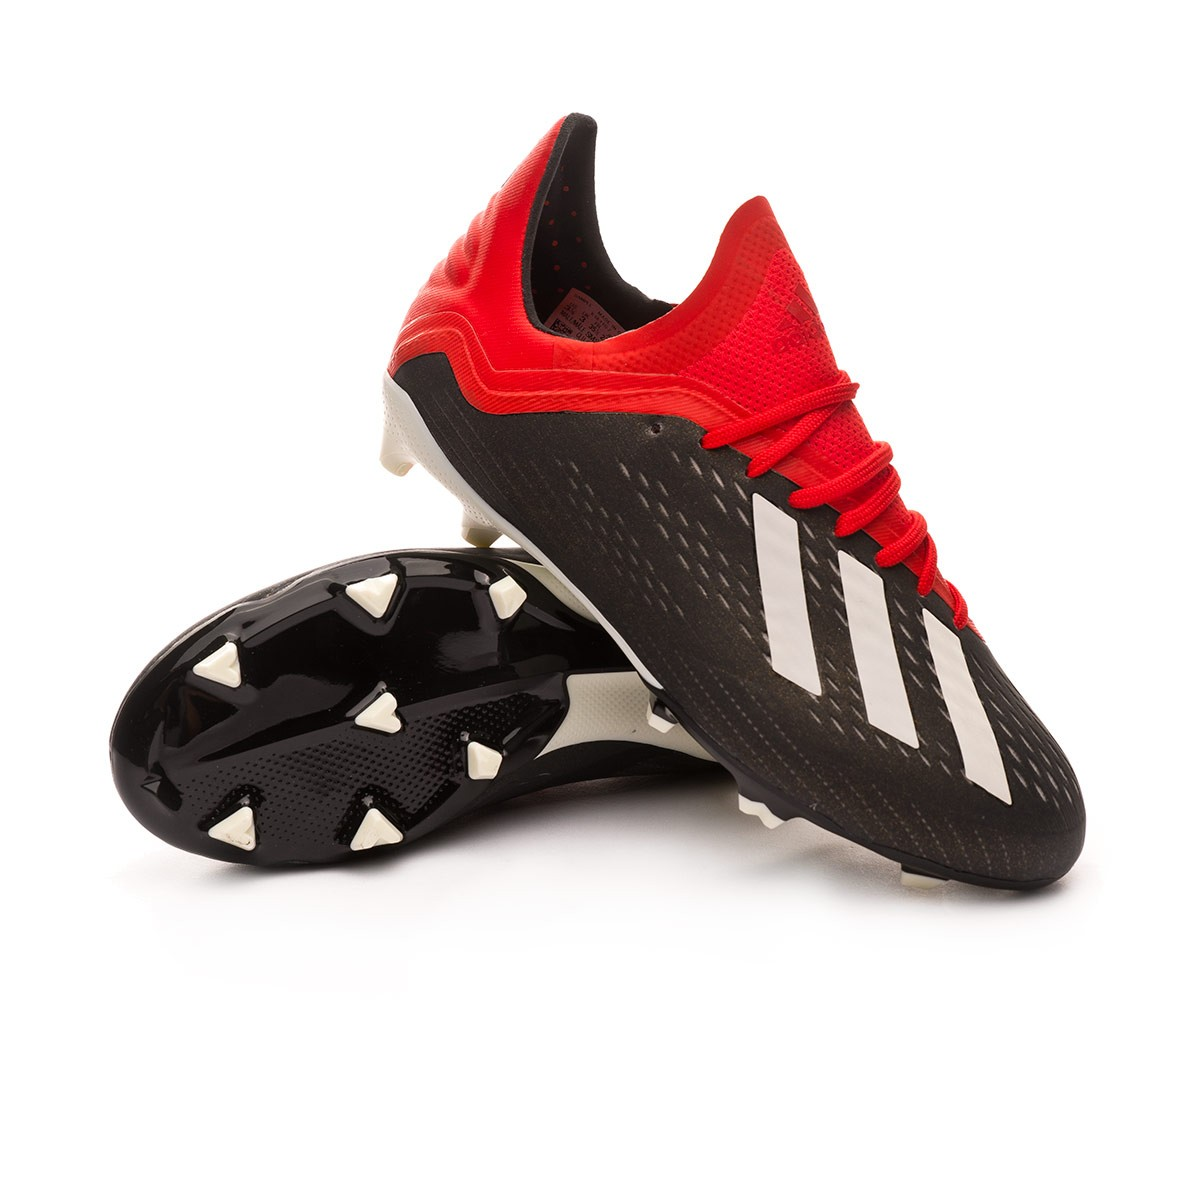 7f104ceba Football Boots adidas Kids X 18.1 FG Core black-White-Active red ...